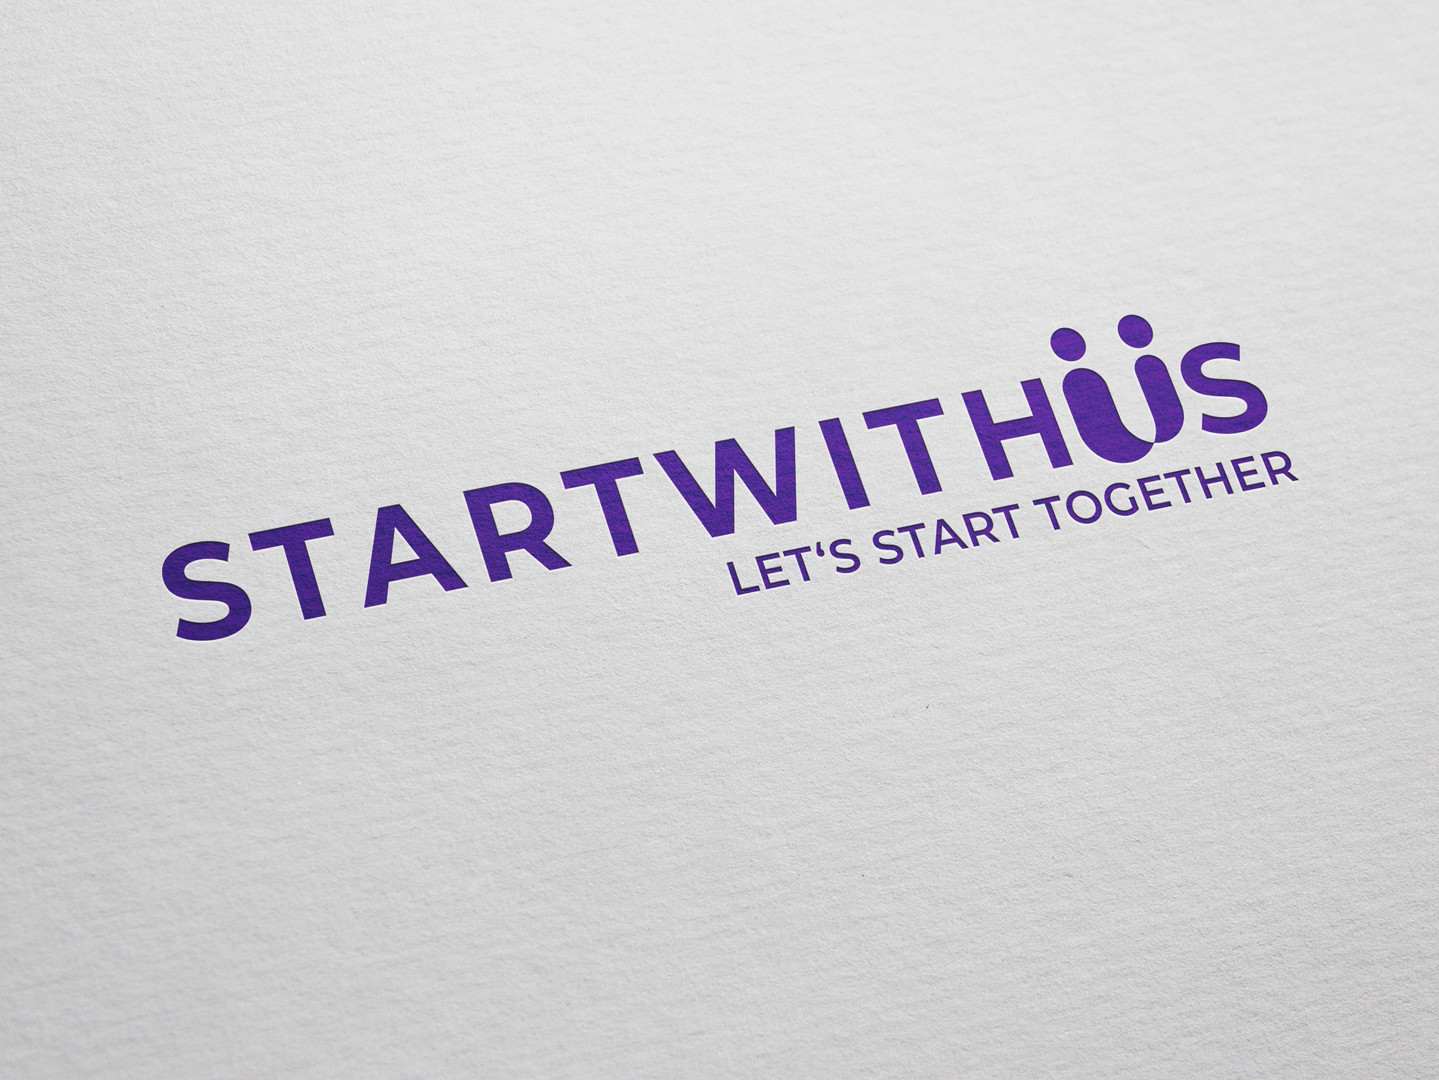 Start With Us company - brand identity